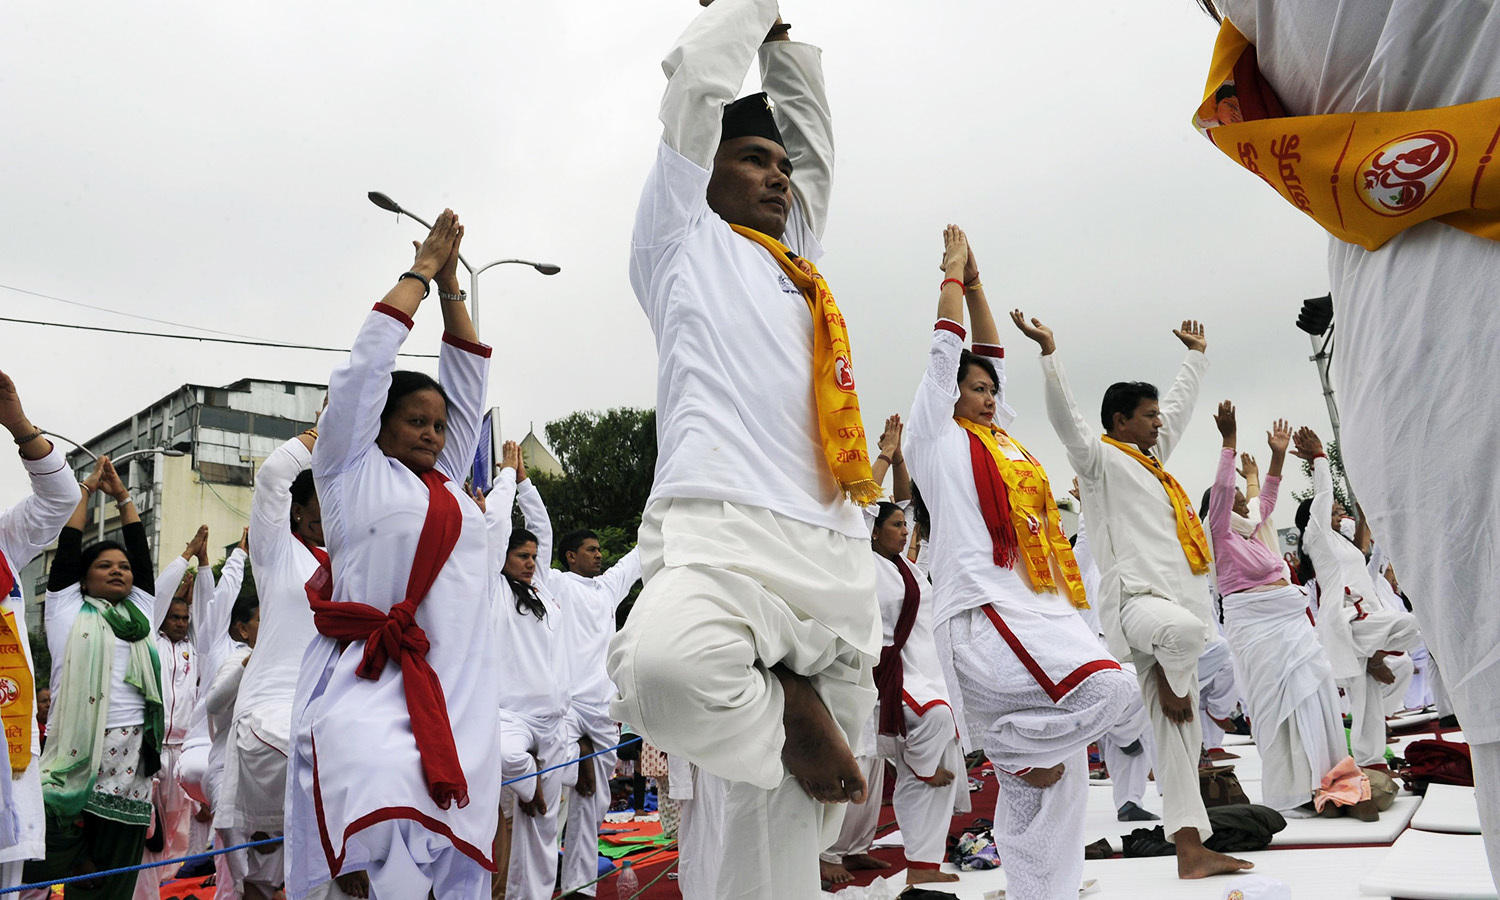 Nepali yoga practioneers take part in a yoga session to mark International Yoga Day in Kathmandu. AFP